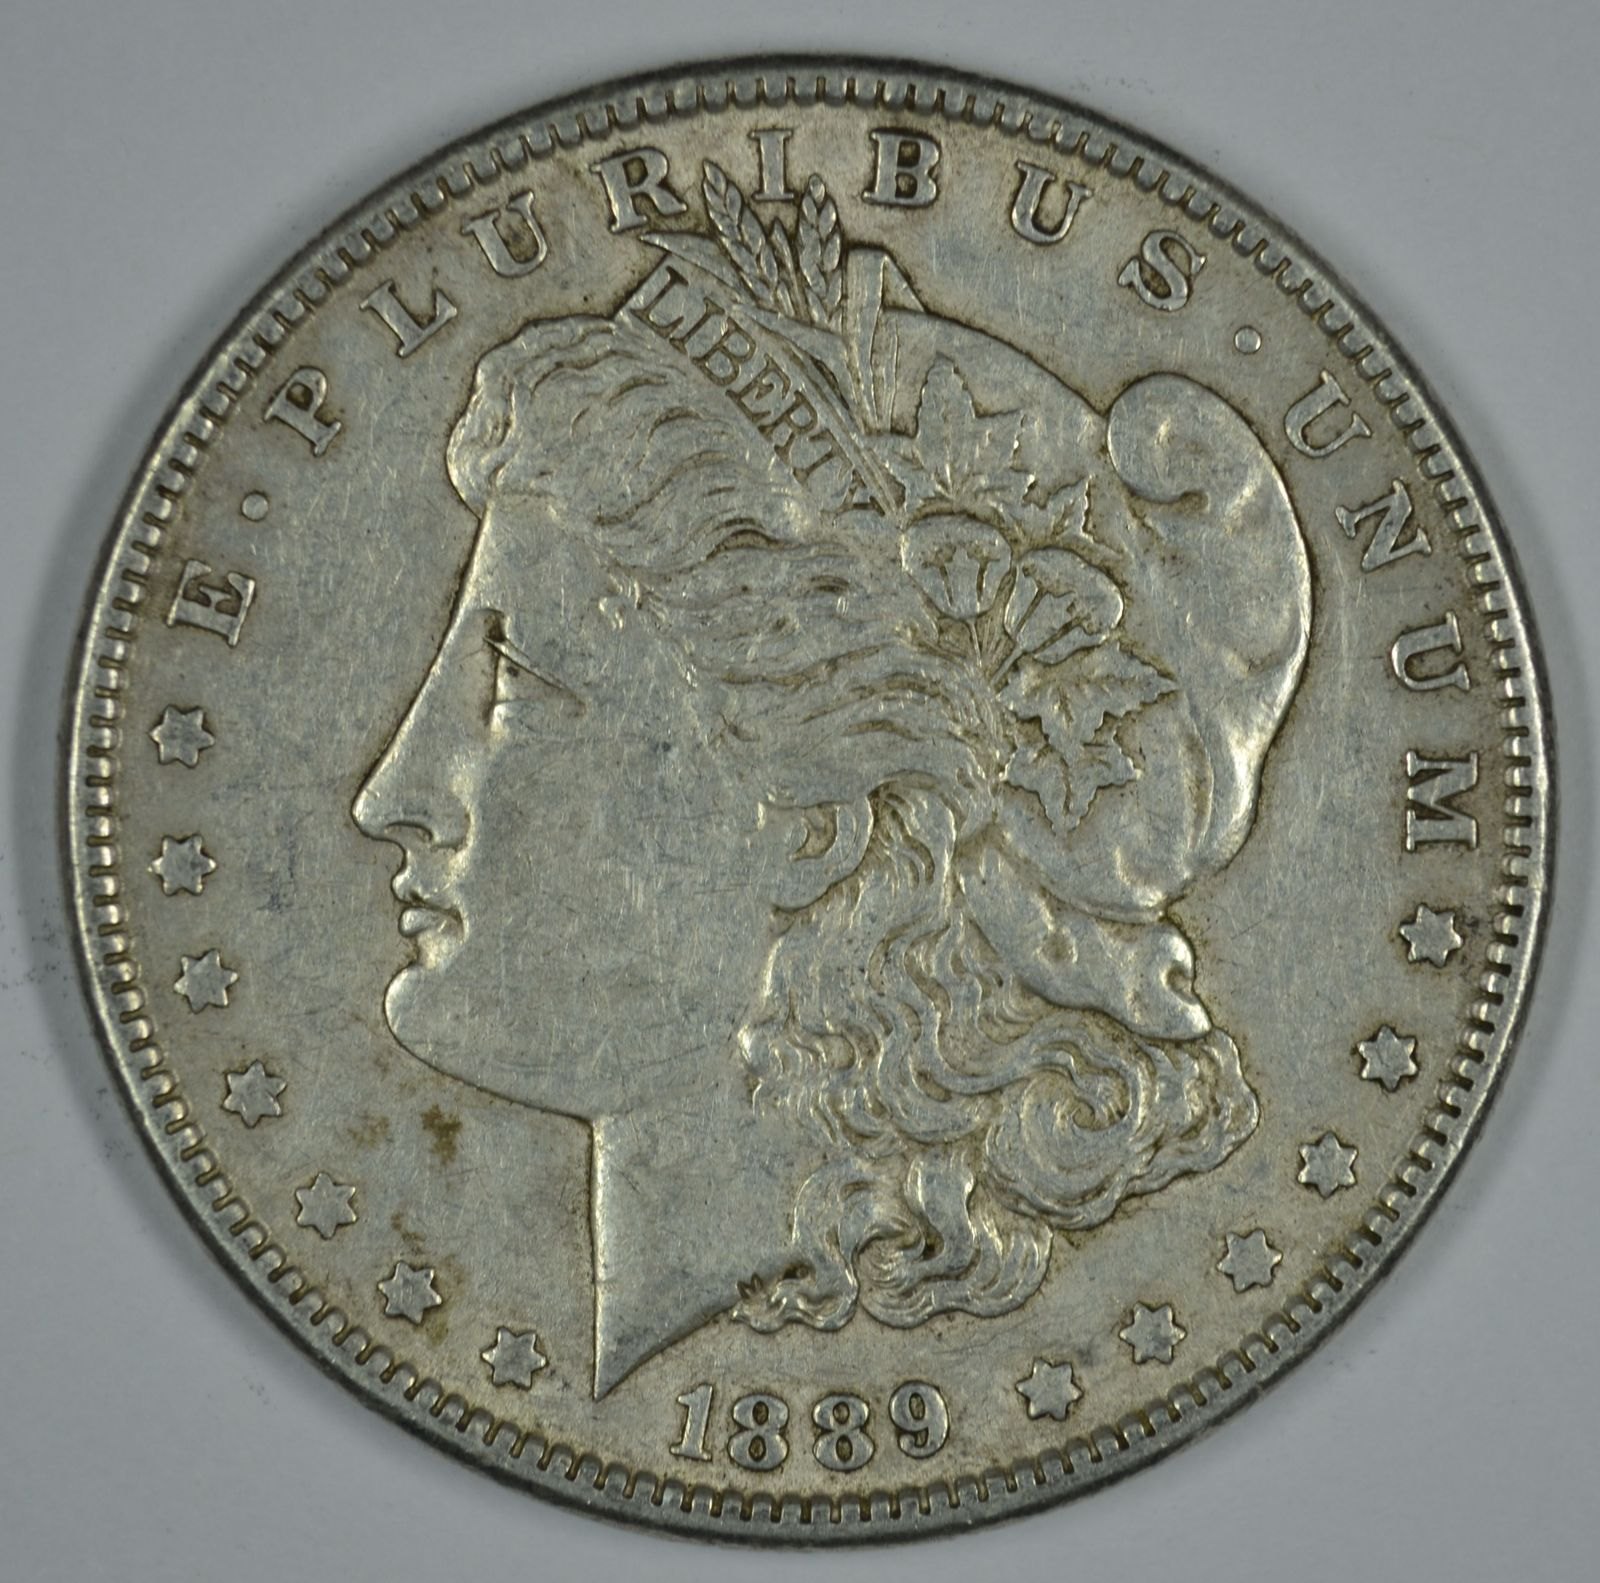 Primary image for 1889 P Morgan circulated silver dollar VF details